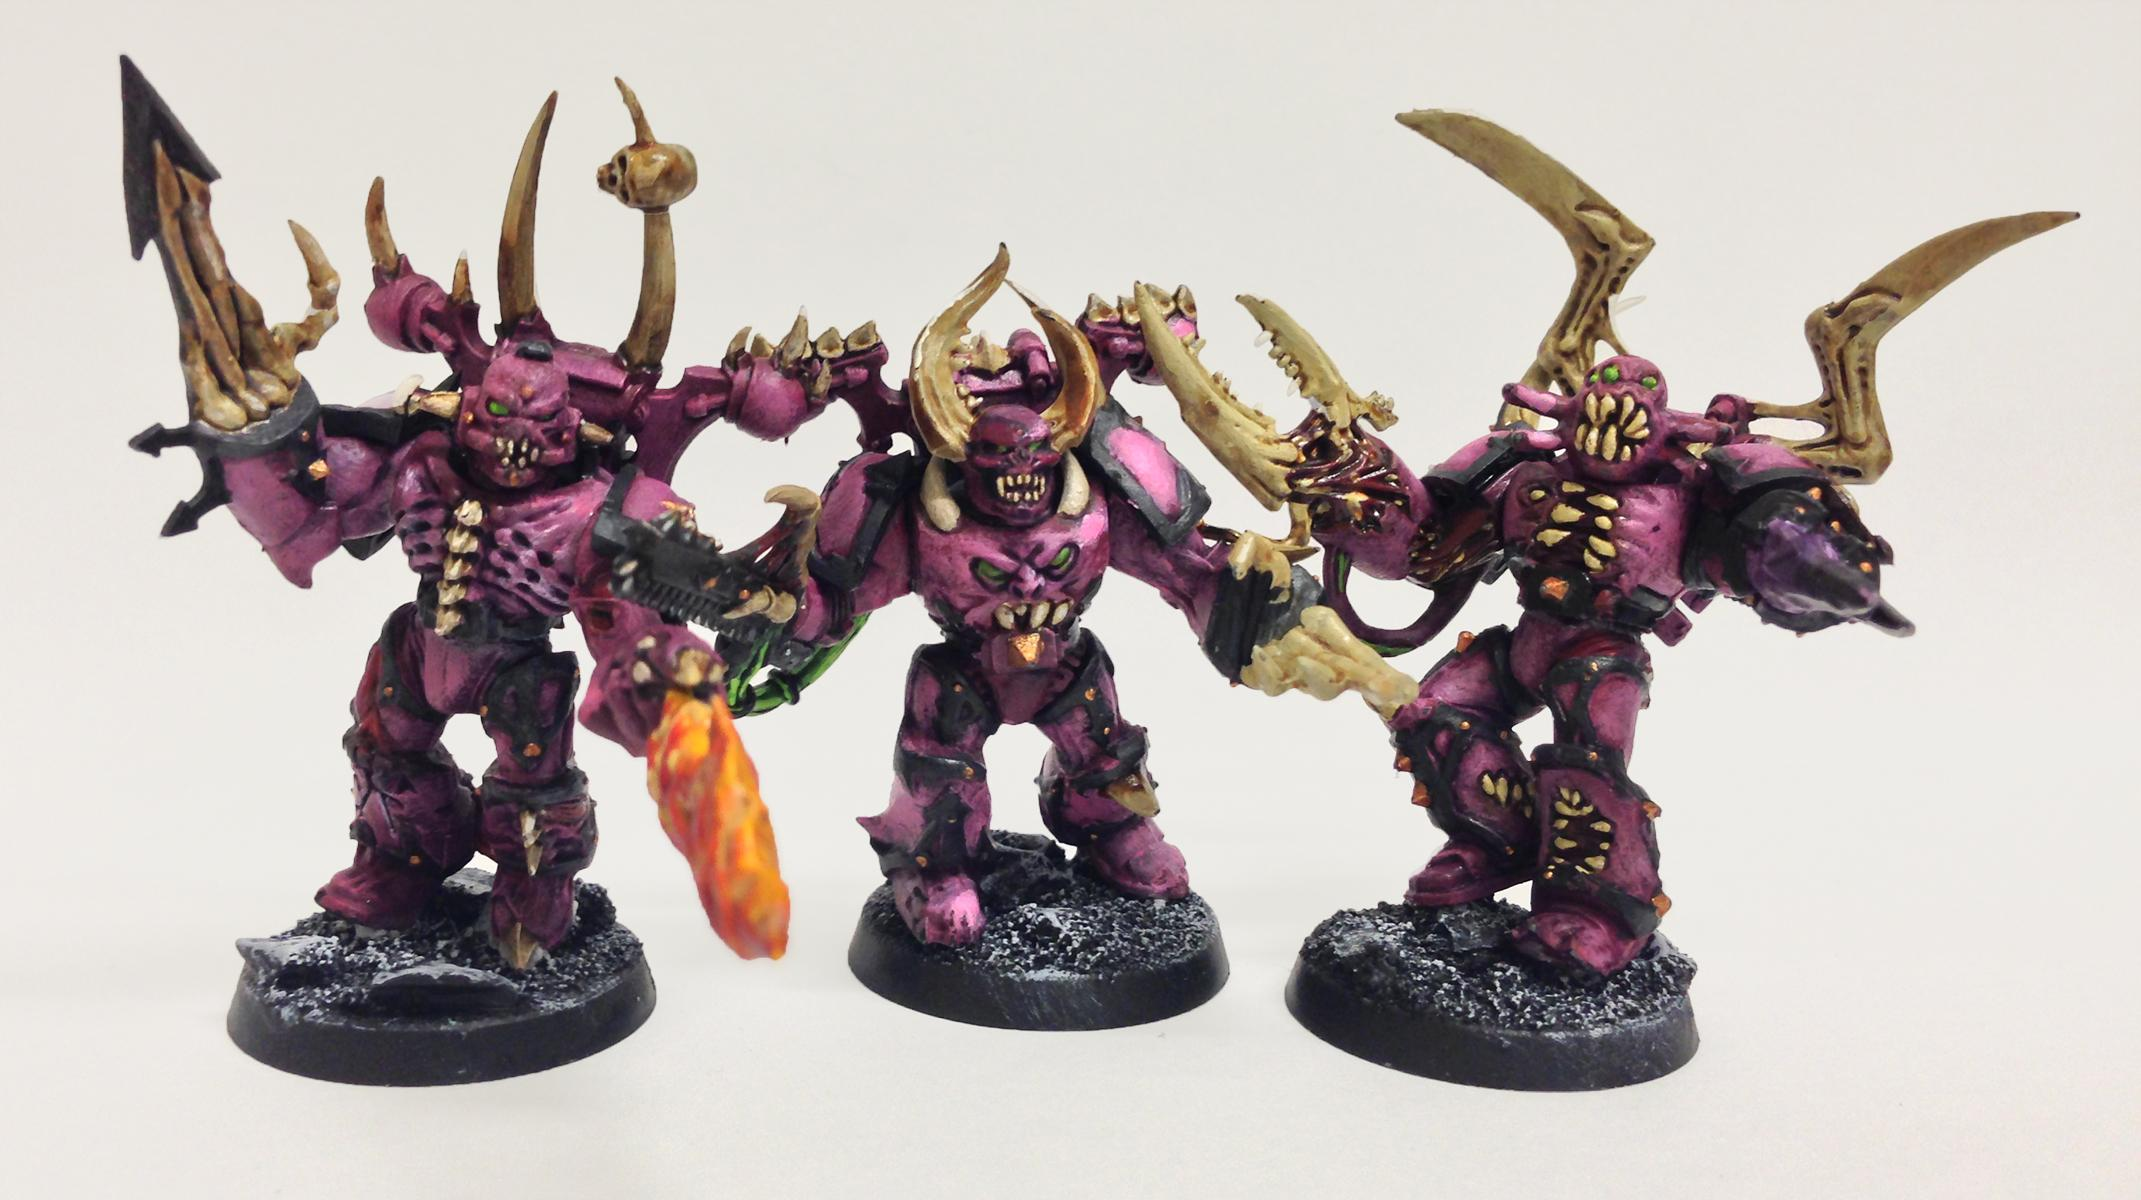 Bones, Emperor's Children, Eyes, Fire, Mouth, Possessed, Possessed Chaos Space Marines